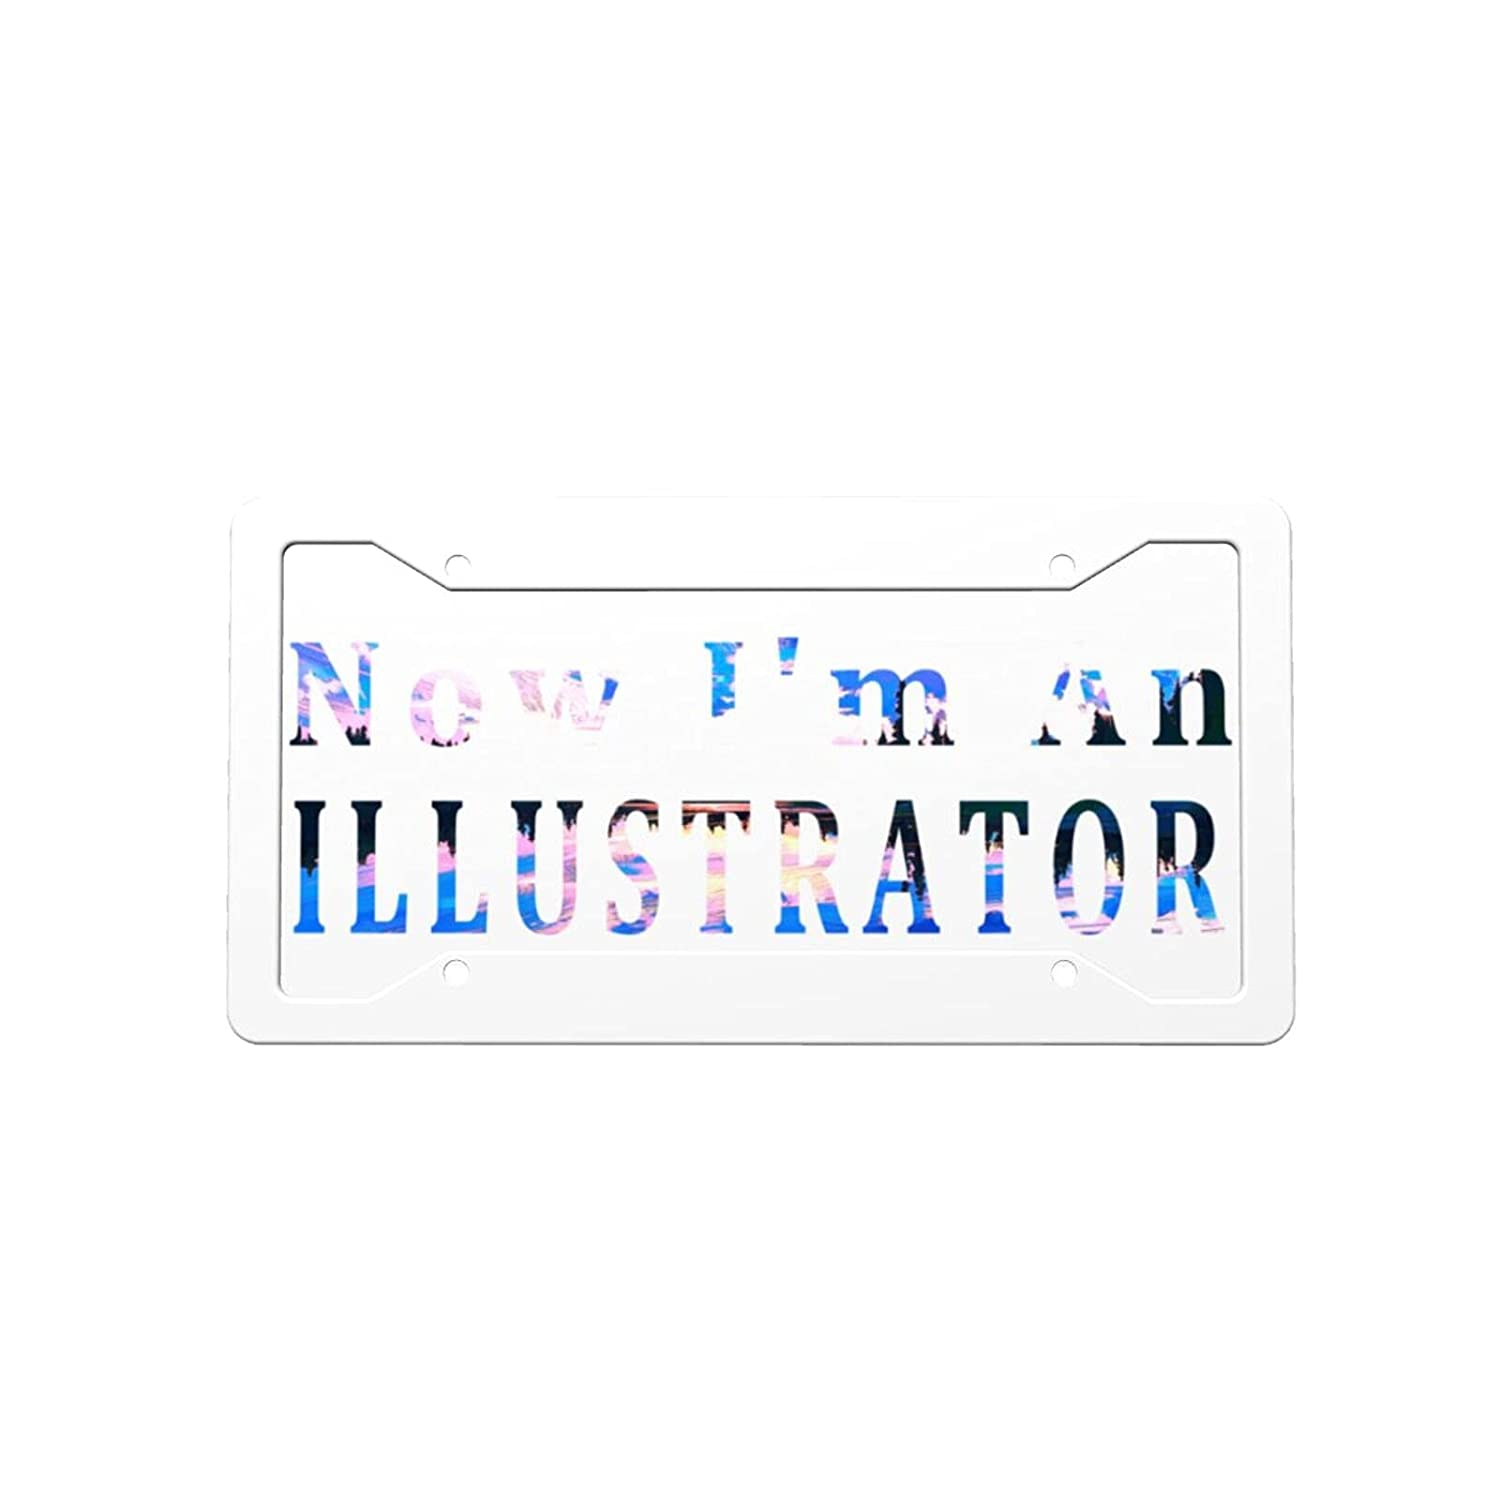 Free shipping anywhere in the nation Now Bargain I'm an Illustrator License Decorative Front Vanit Car Plate